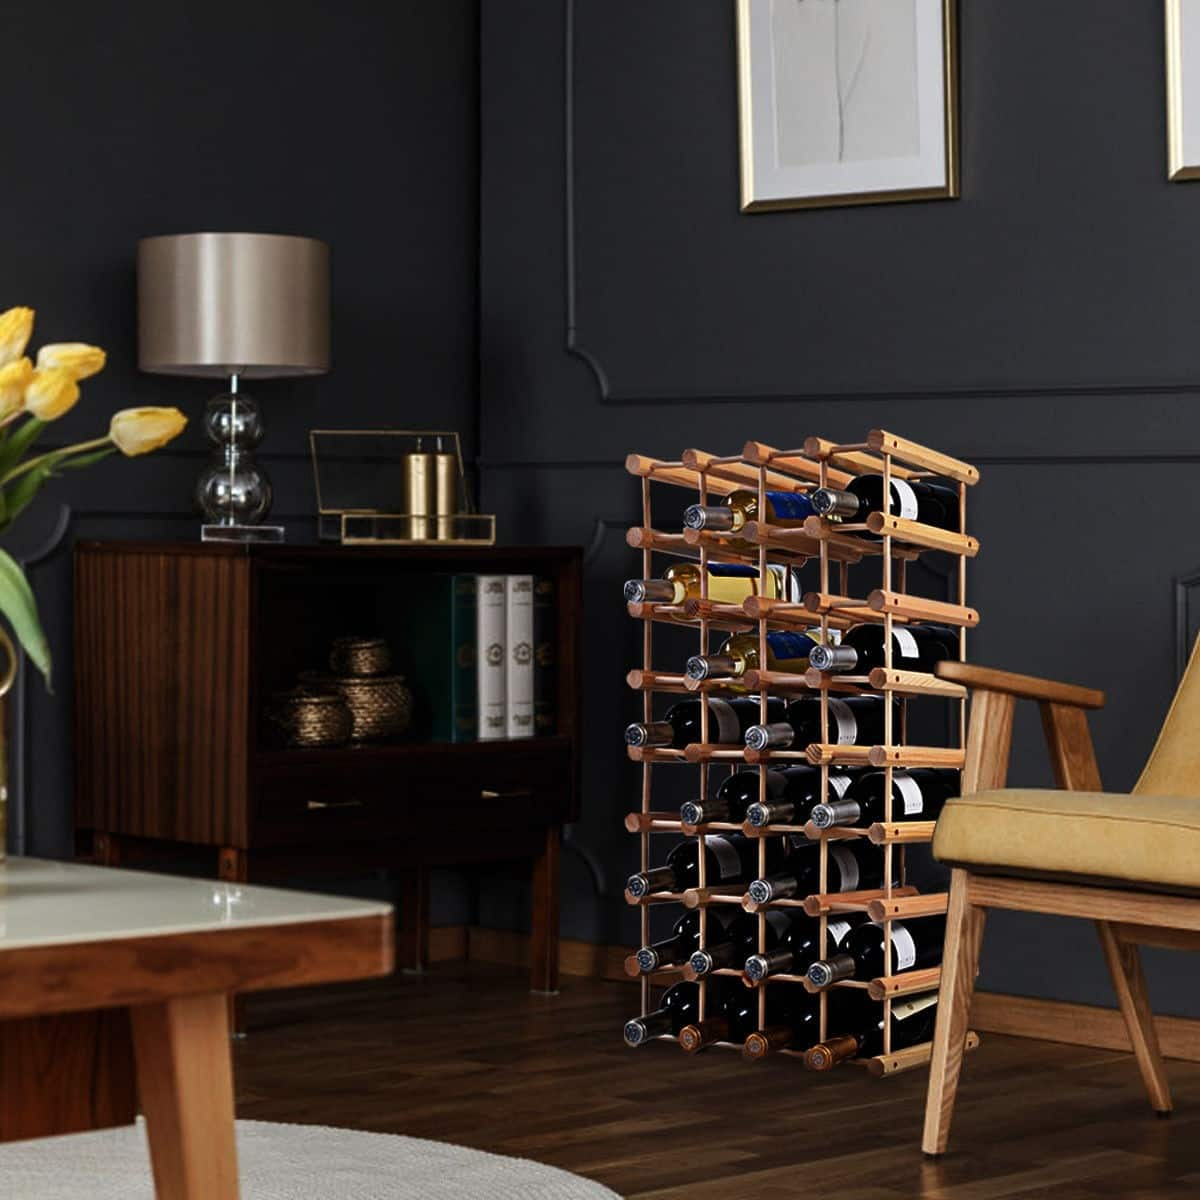 Wooden Bottle Rack Costway Wooden Bottle Rack Wine Holder For 40 Bottles 30 95 Fs